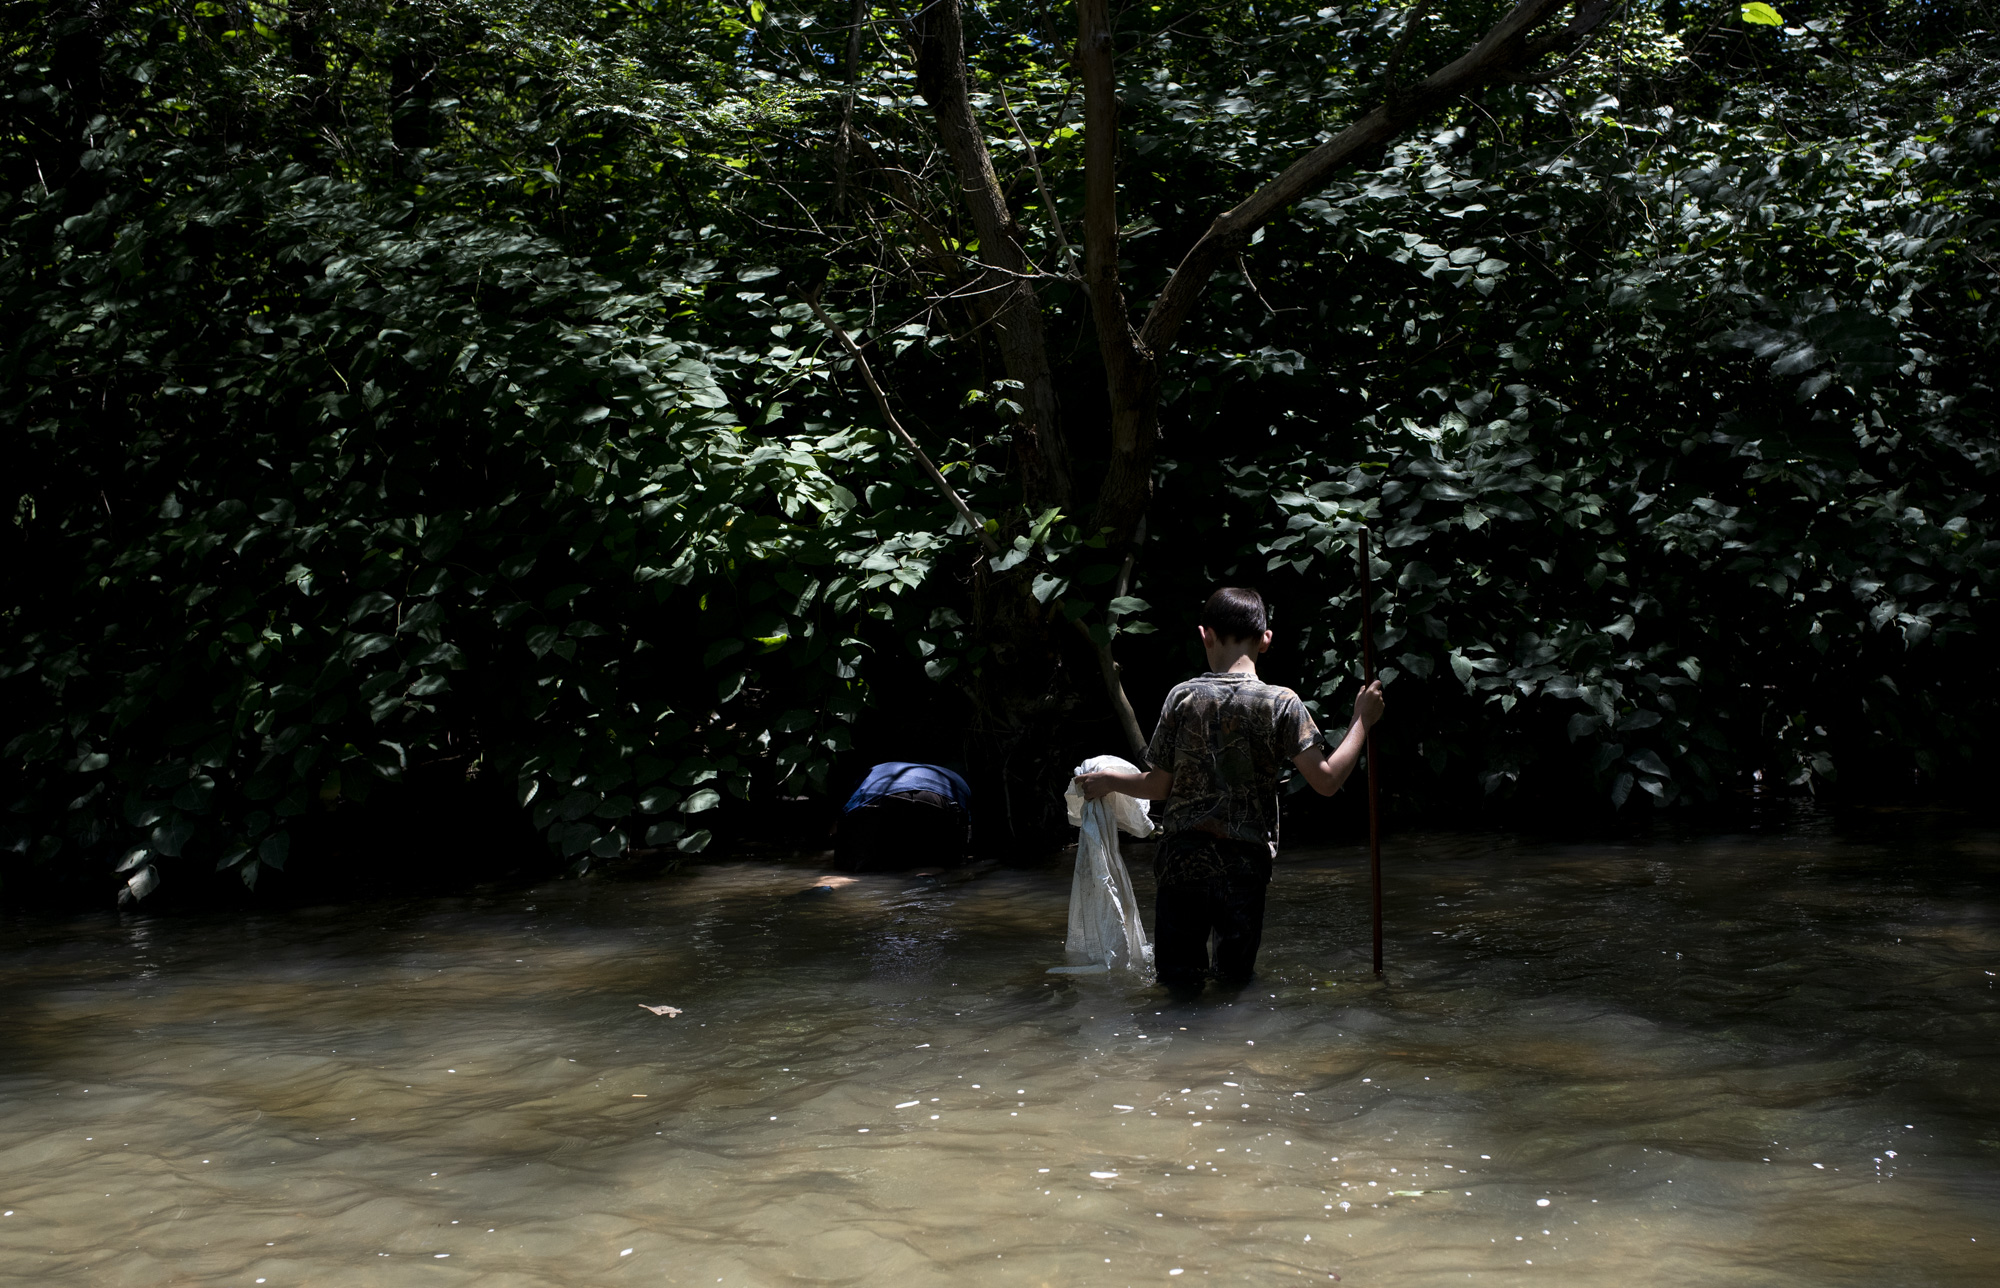 Adyn Clemens watches as John Clemens, of Irwin, look under the brush and tree root for snapping turtle in Sewickley Creek in Sewickley twp on July 7, 2018.